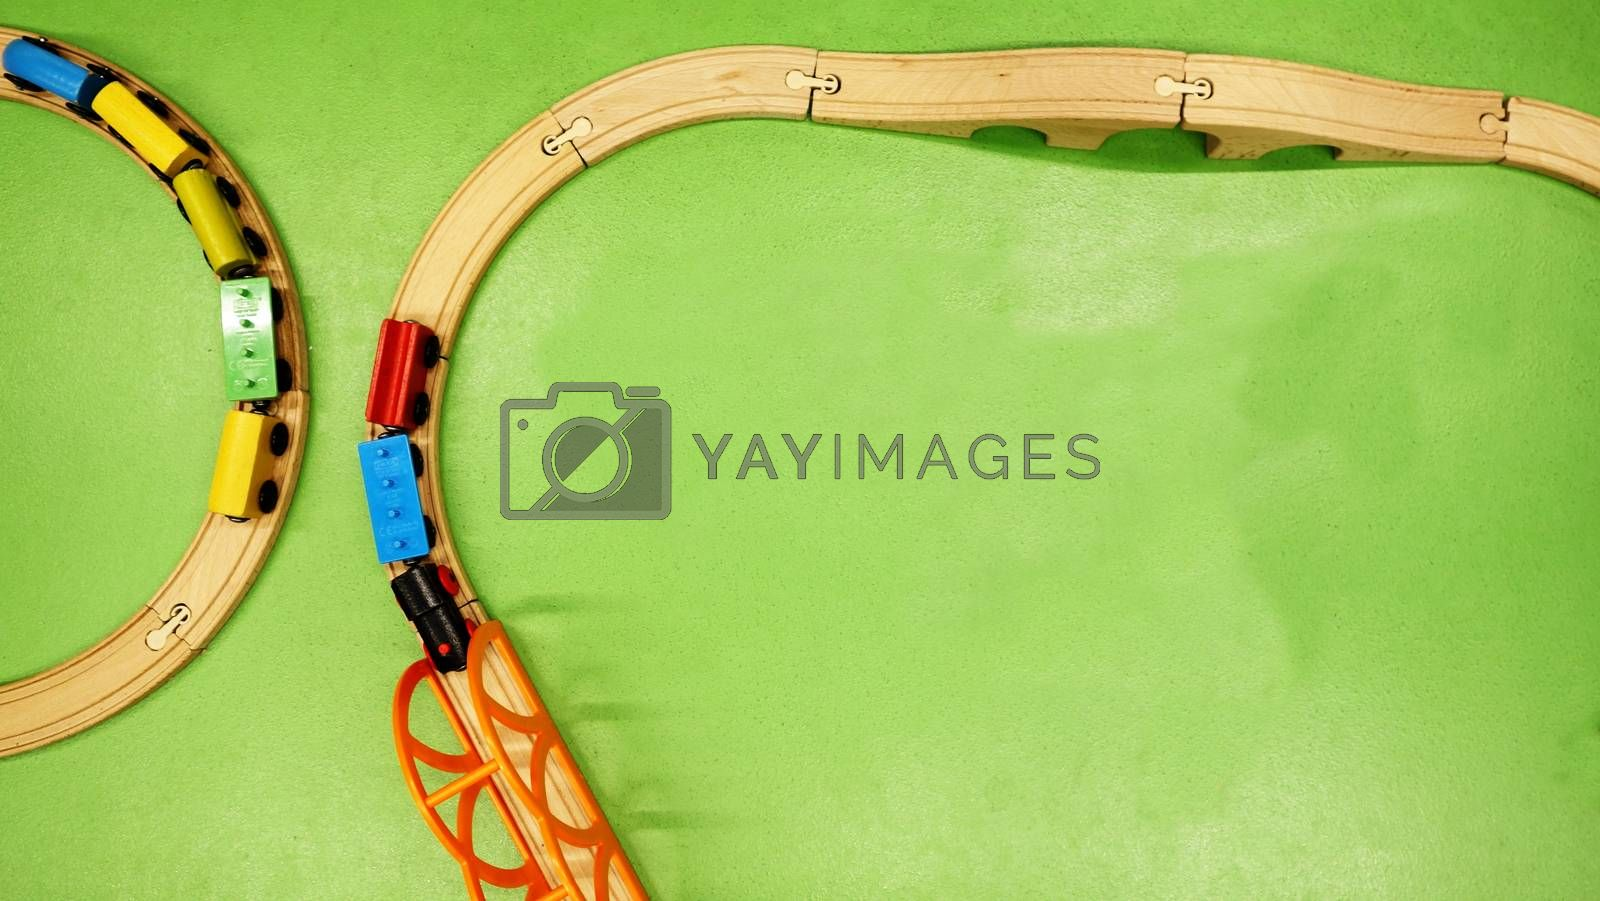 TOP VIEW: Wooden toy train on curve wooden railways with green background. Copy space for text